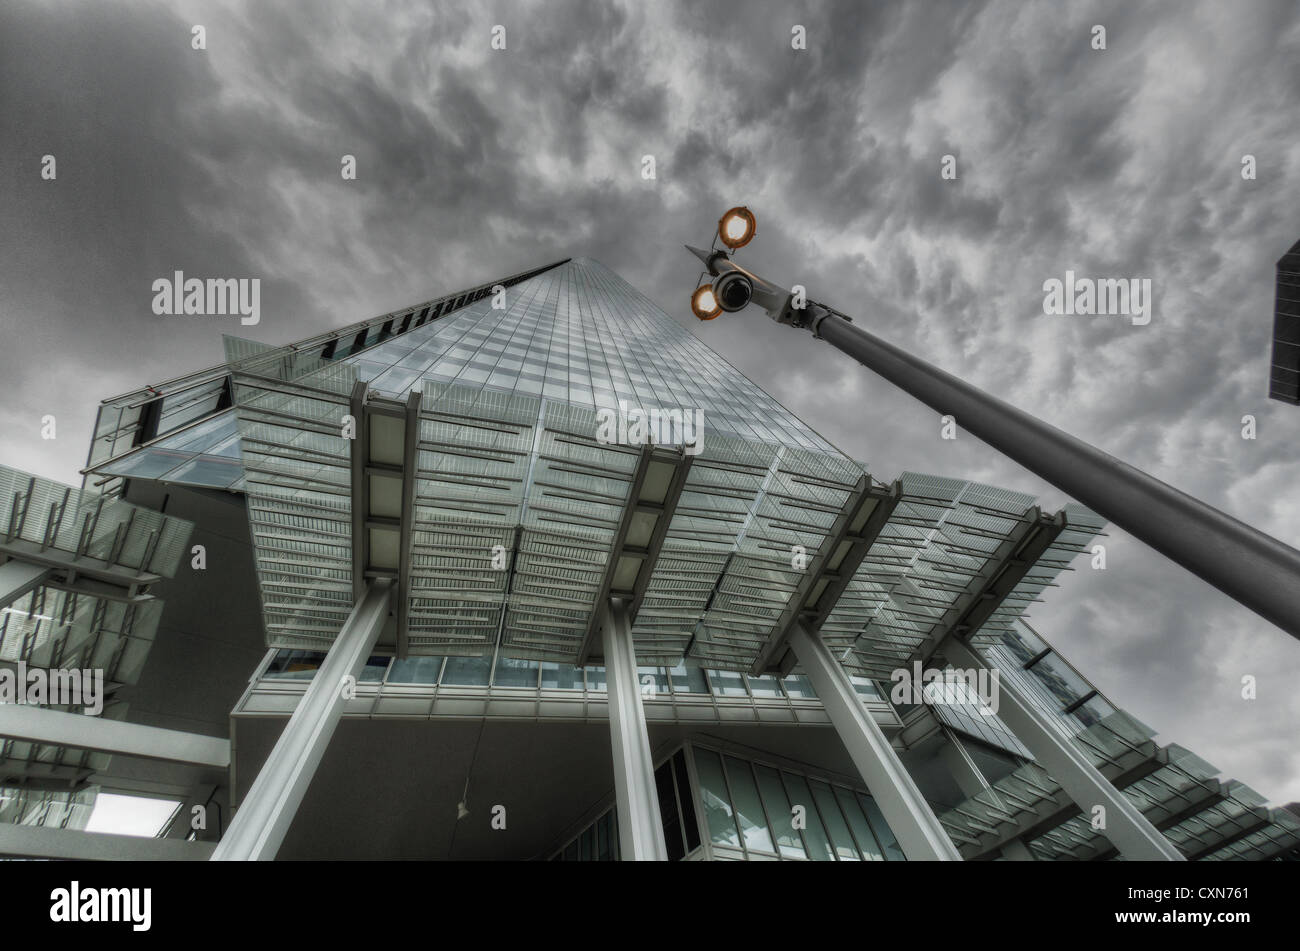 The Shard building close up view of modern architectural construction from ground level looking up into the cloud - Stock Image